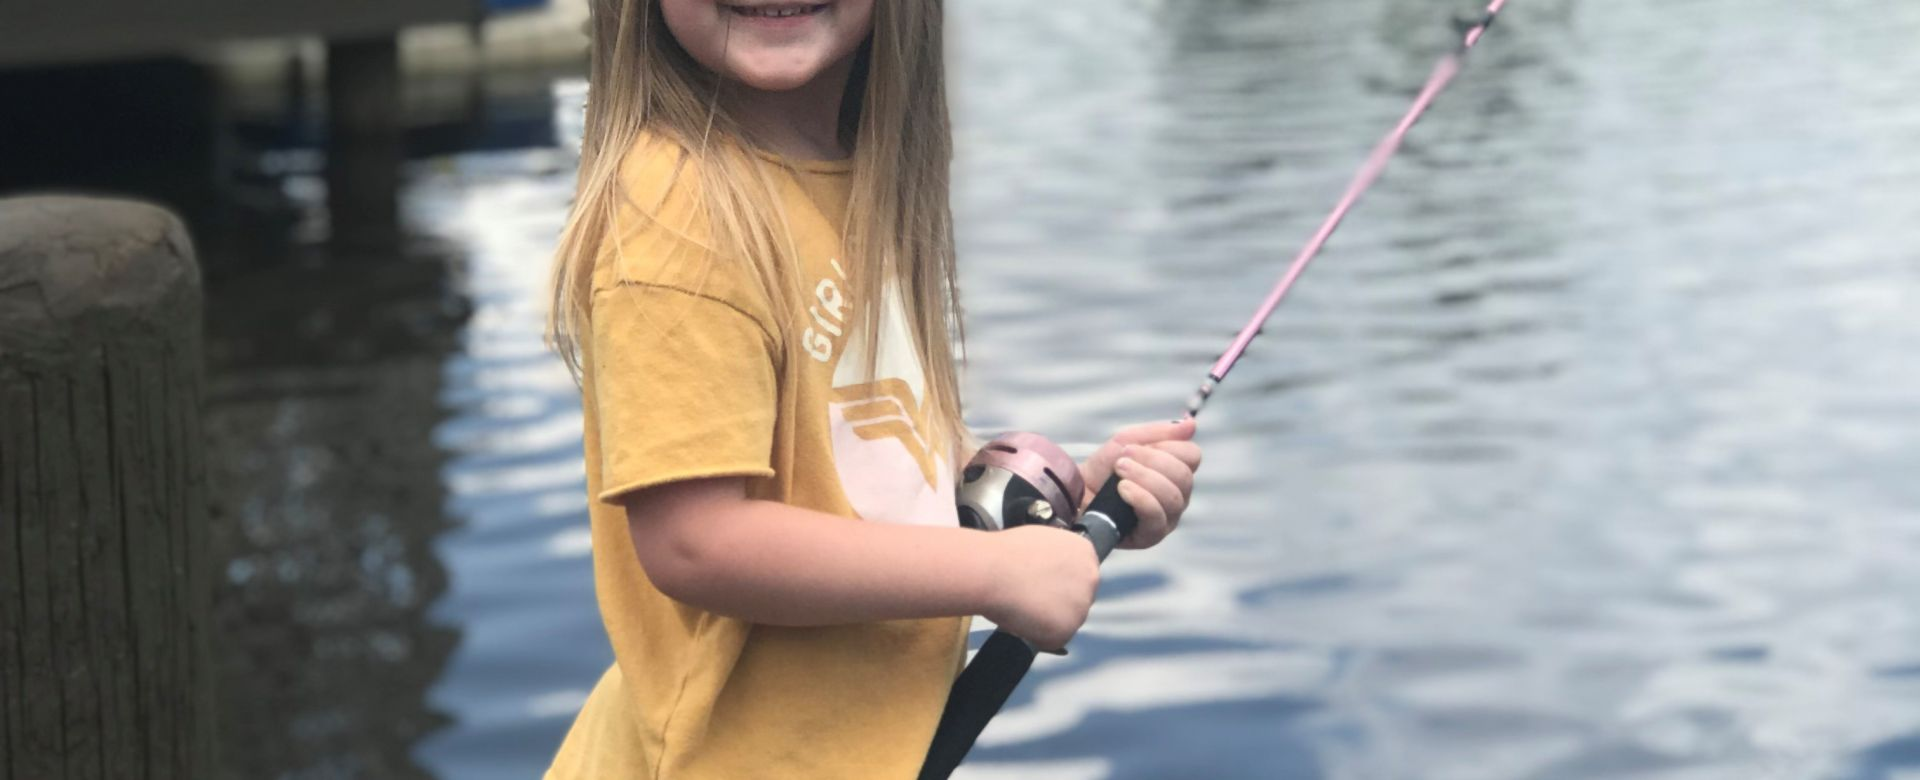 little girl fishing in a lake